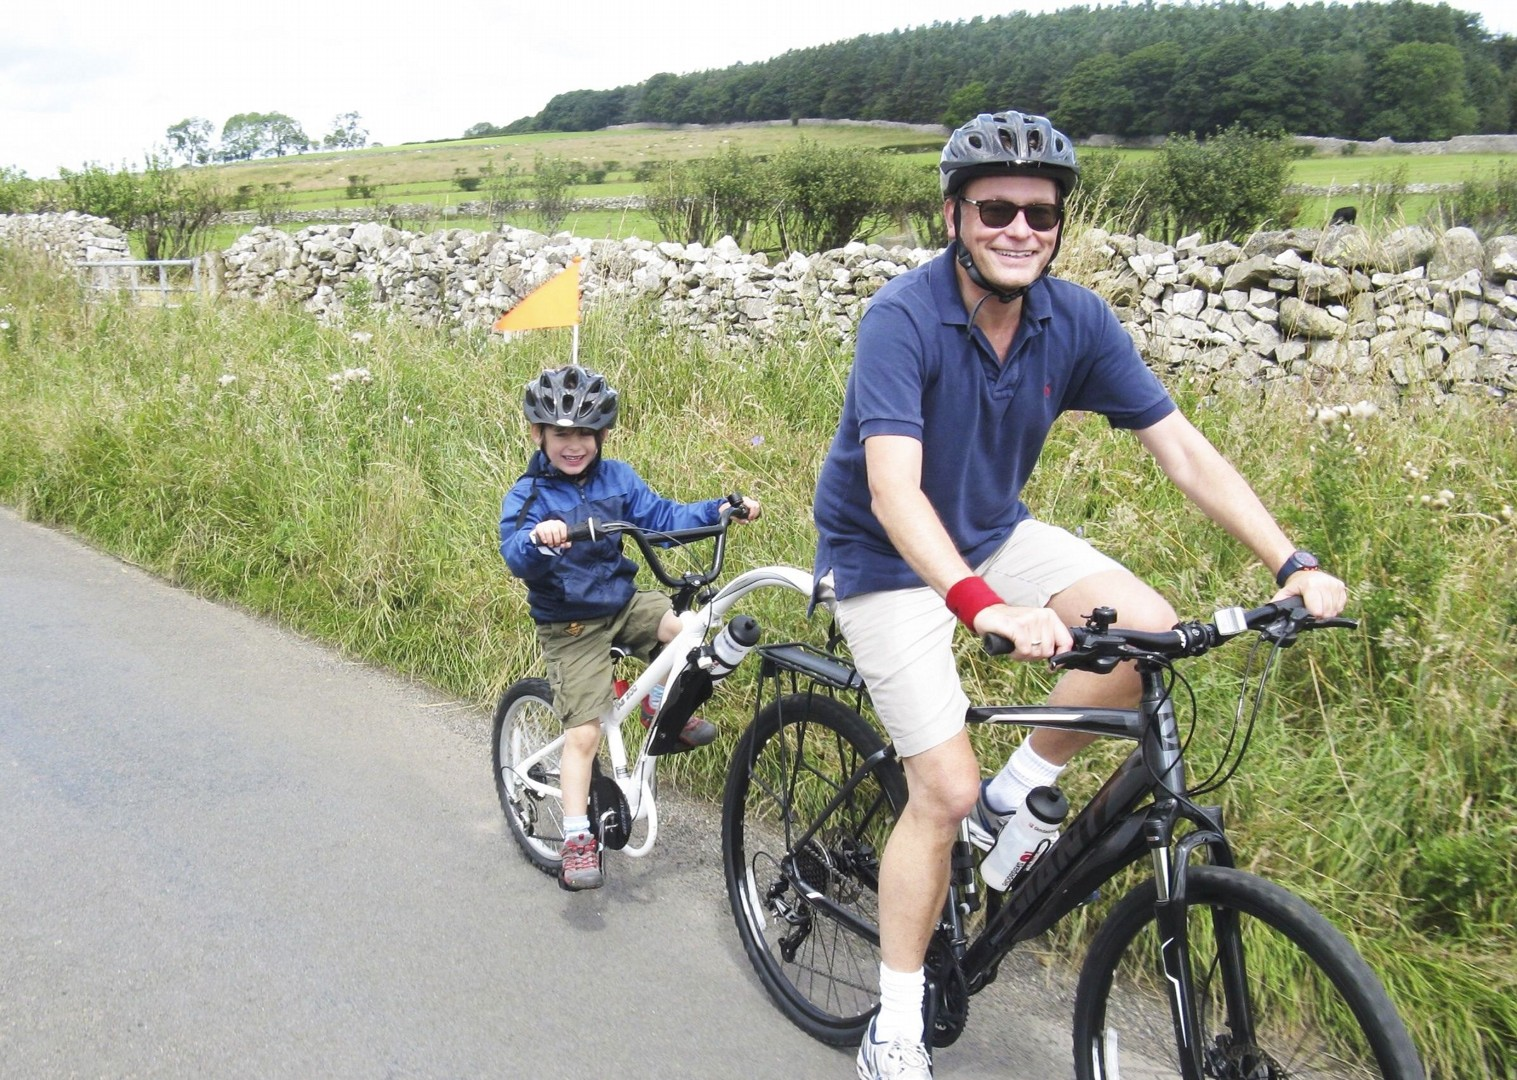 family-bike-skills-weekend-lake-district-uk.jpg - UK - Lake District - Bike Skills - Family Cycling